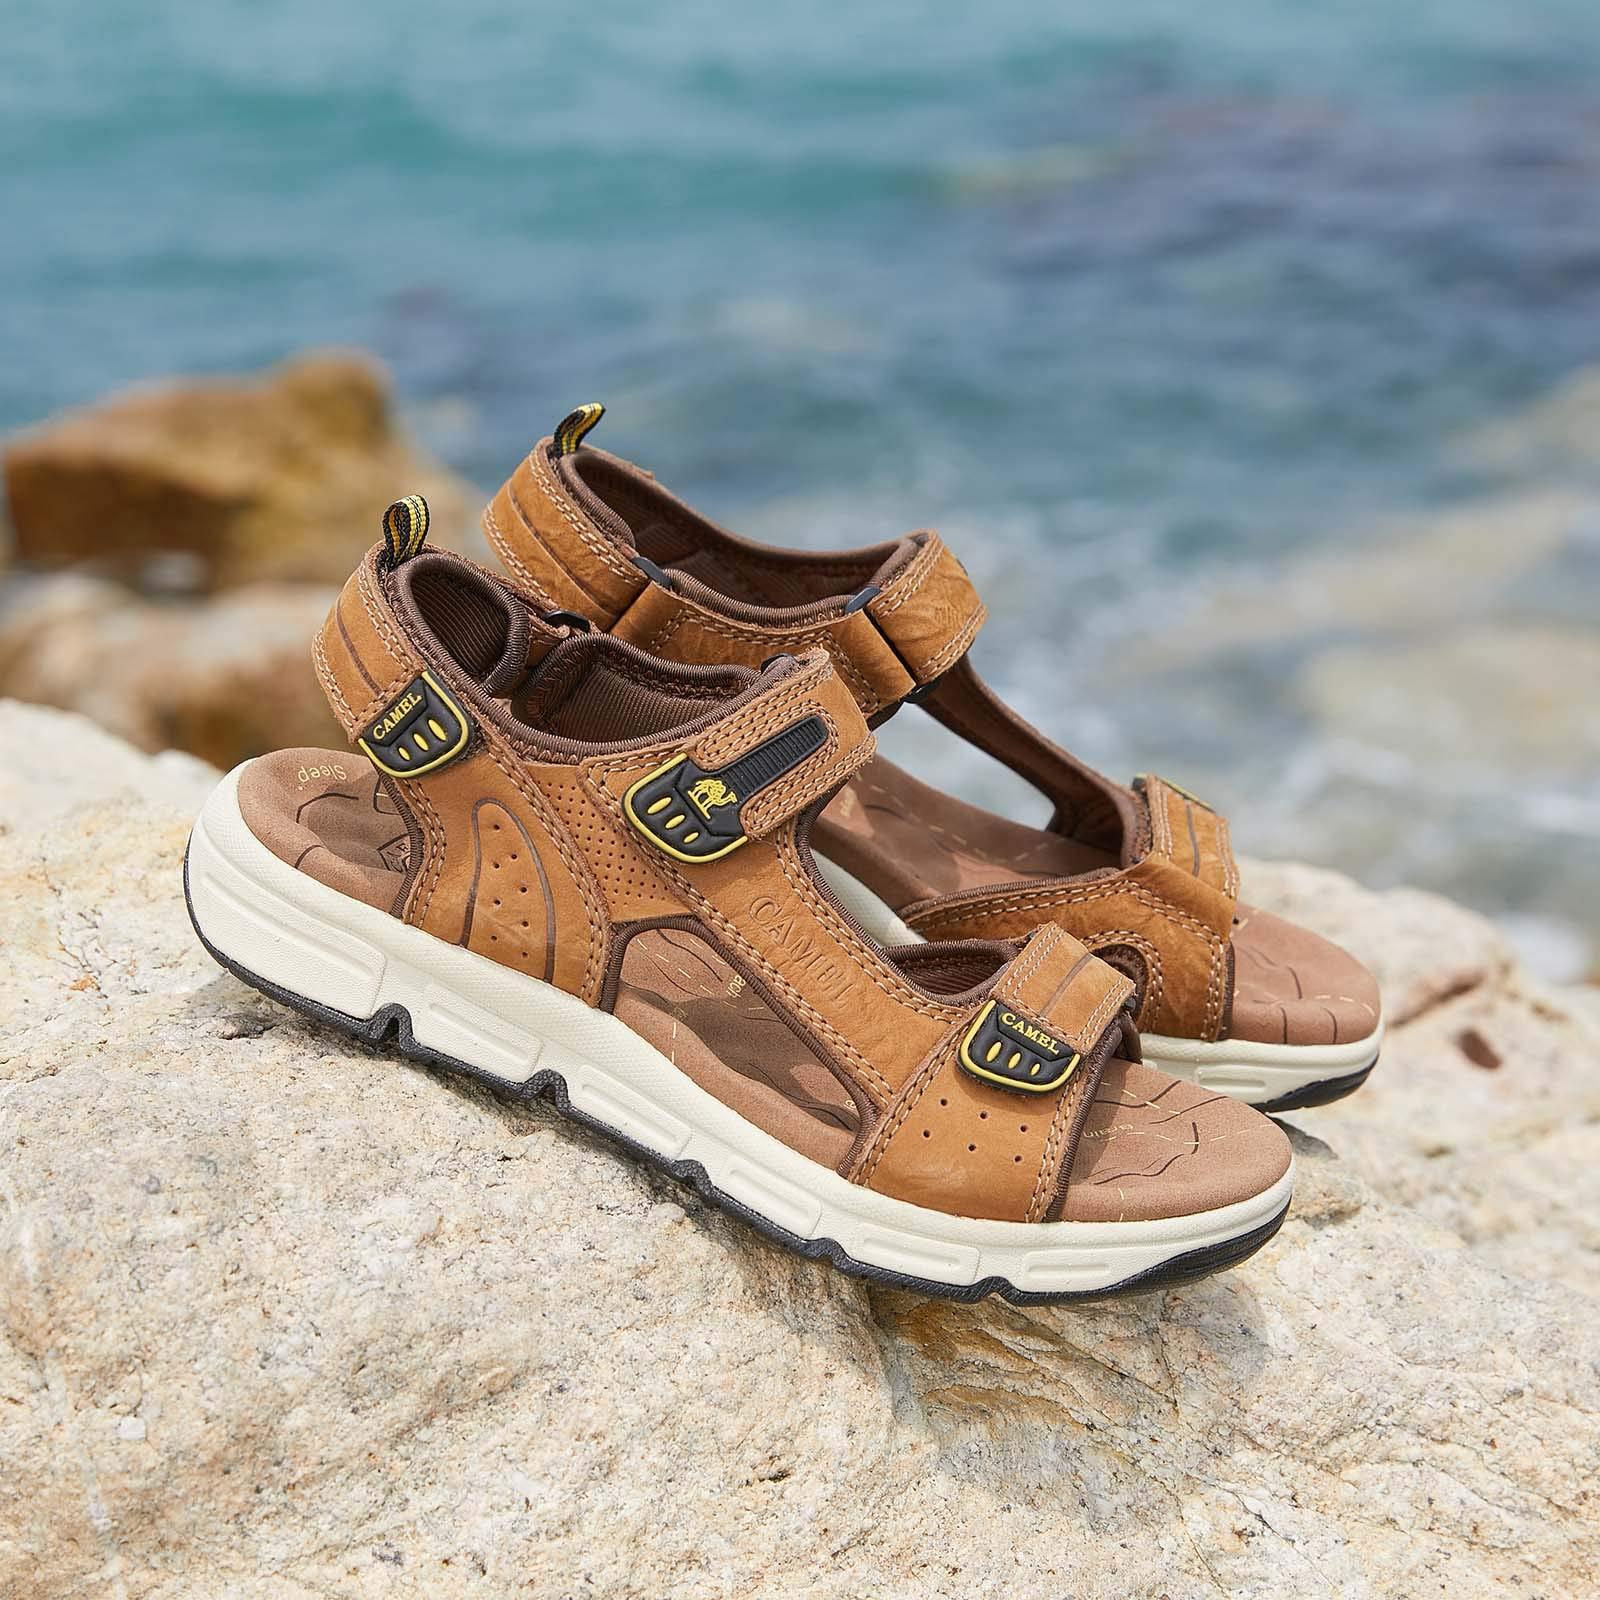 CAMEL CROWN Lightweight Leather Sandals for Men Strap Athletic Shoes Hiking Sandals for Walking Beach Outdoor Summer